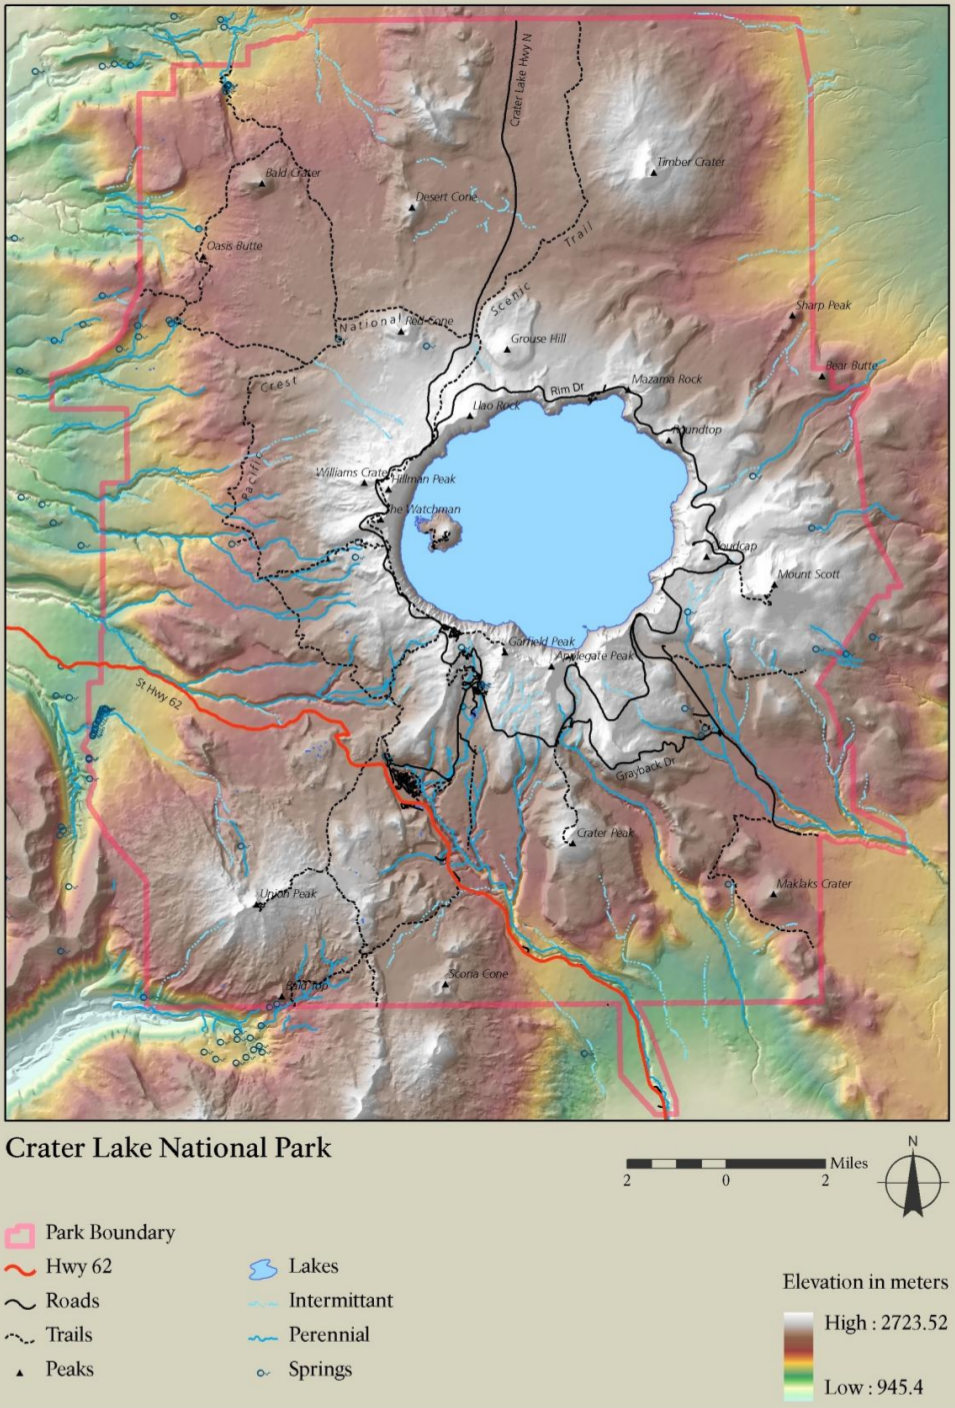 FileNPS Craterlakeelevationmapjpg Wikimedia Commons - Lake contour maps free